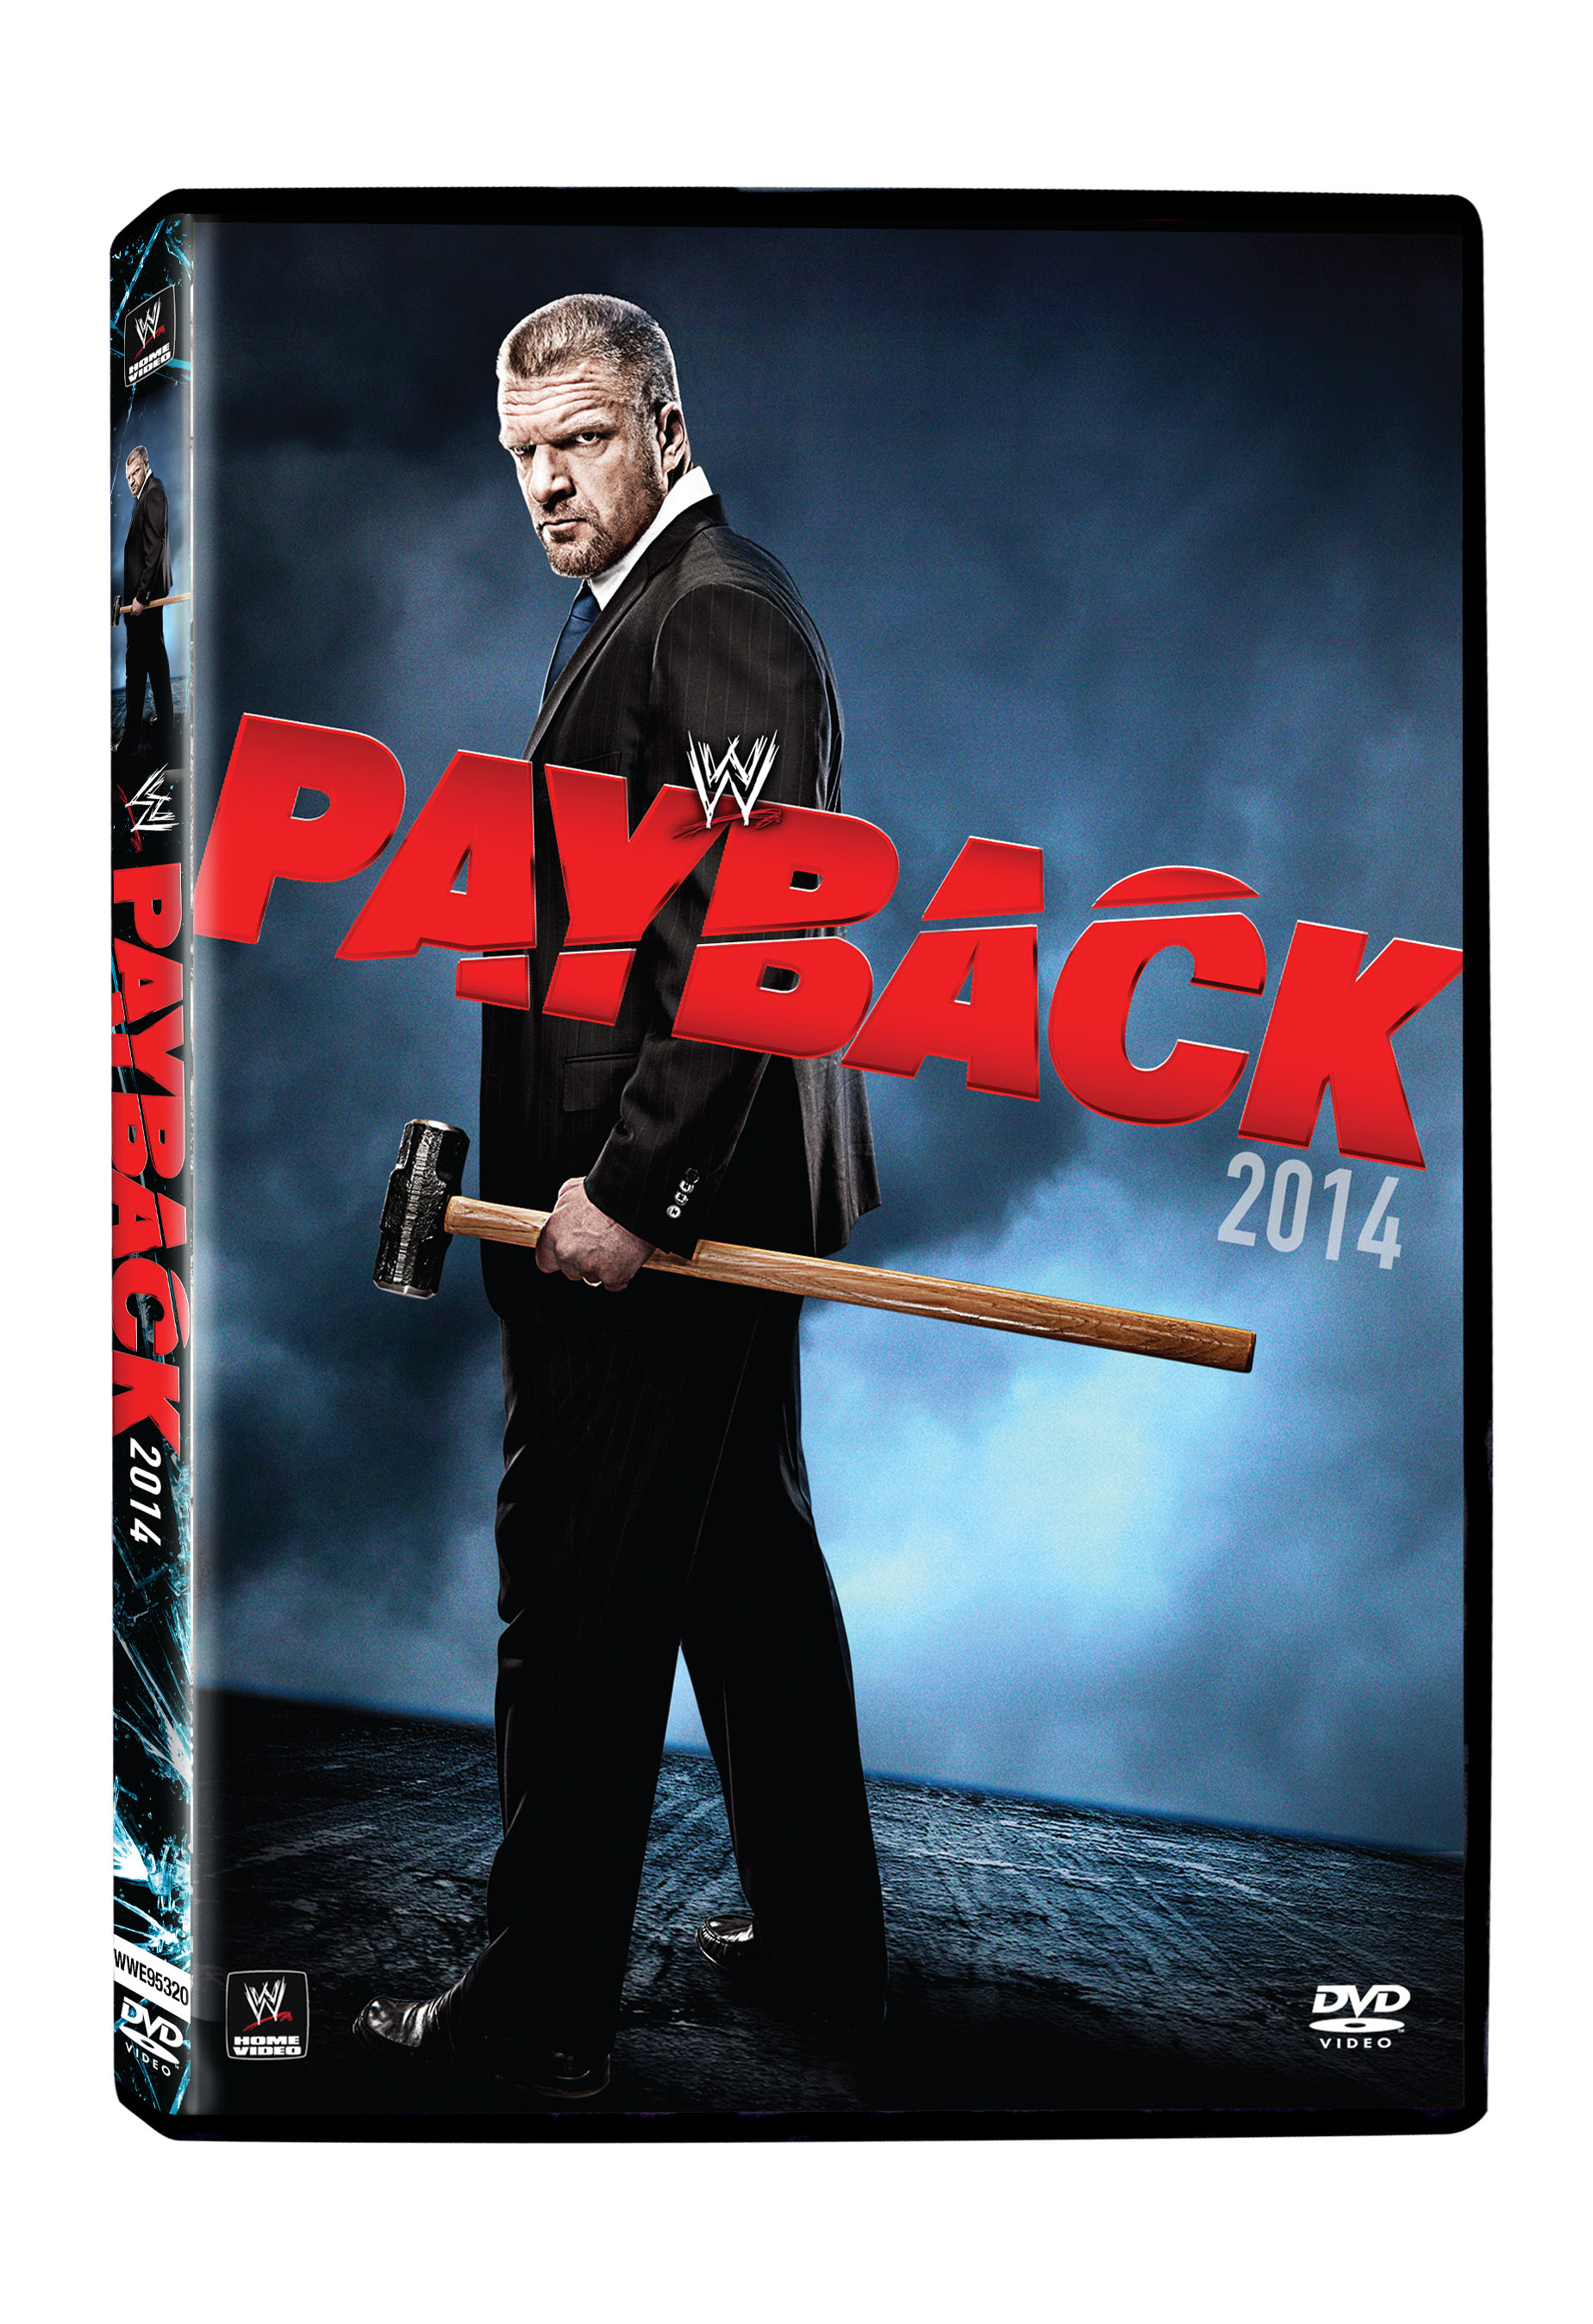 Payback 2014 - WWE - Cinedigm Entertainment